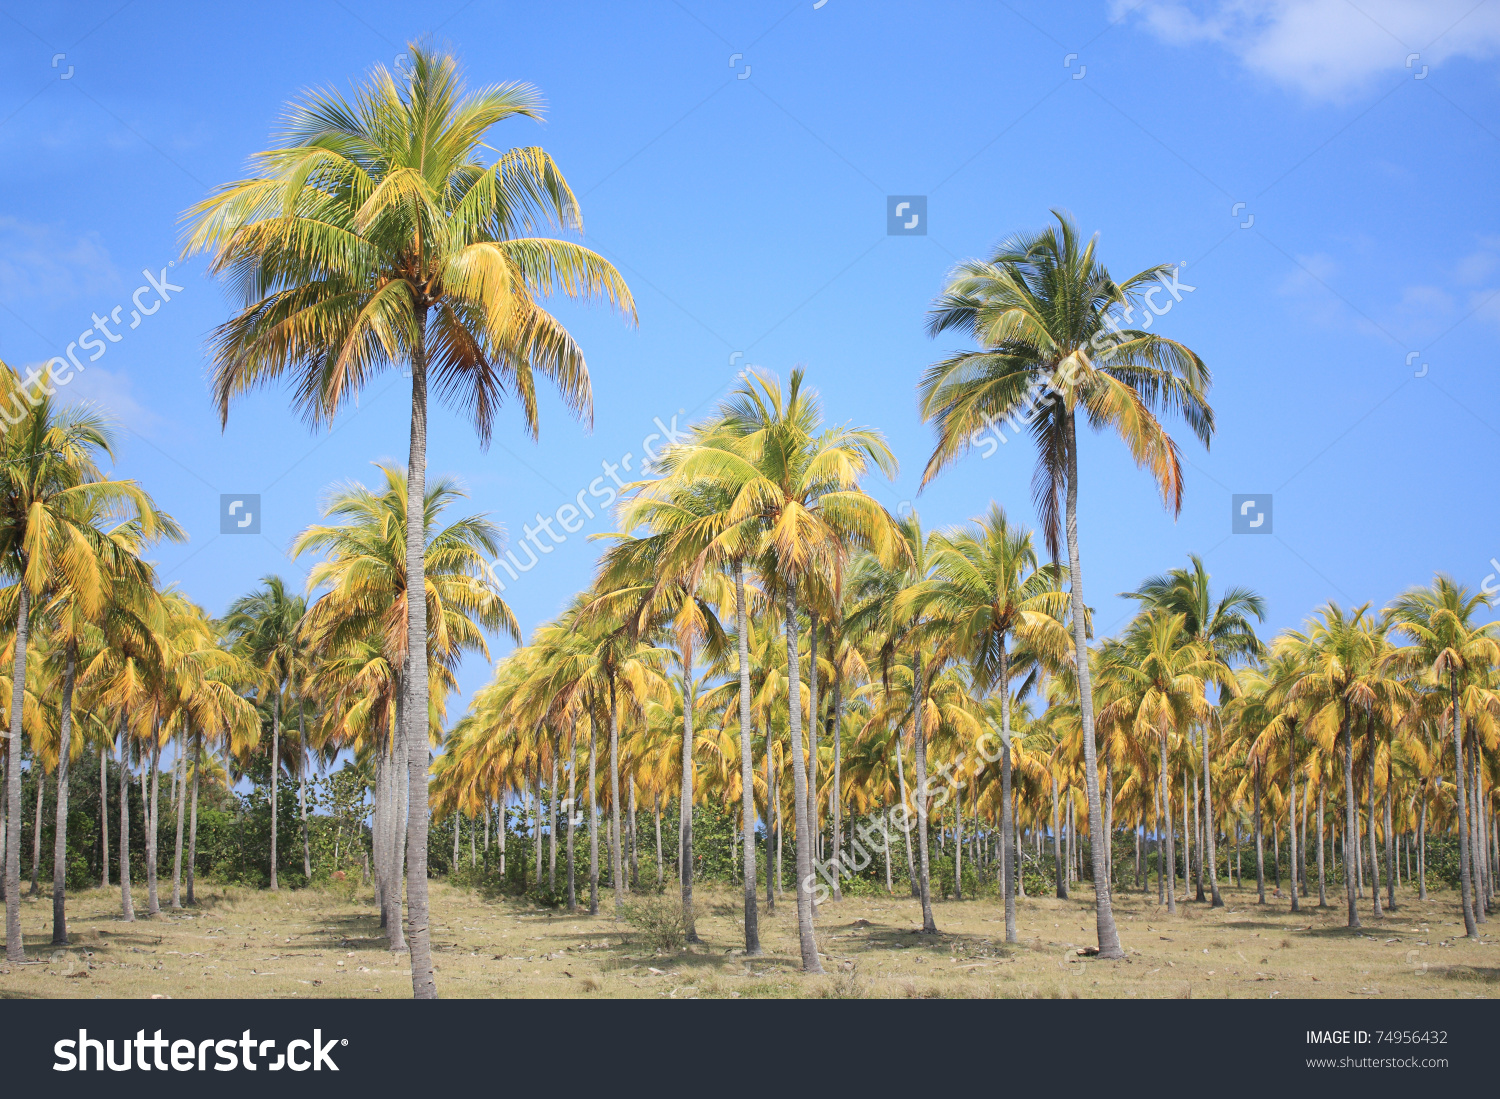 Plantation Of Coconut Palm Trees In Cuba. Stock Photo 74956432.